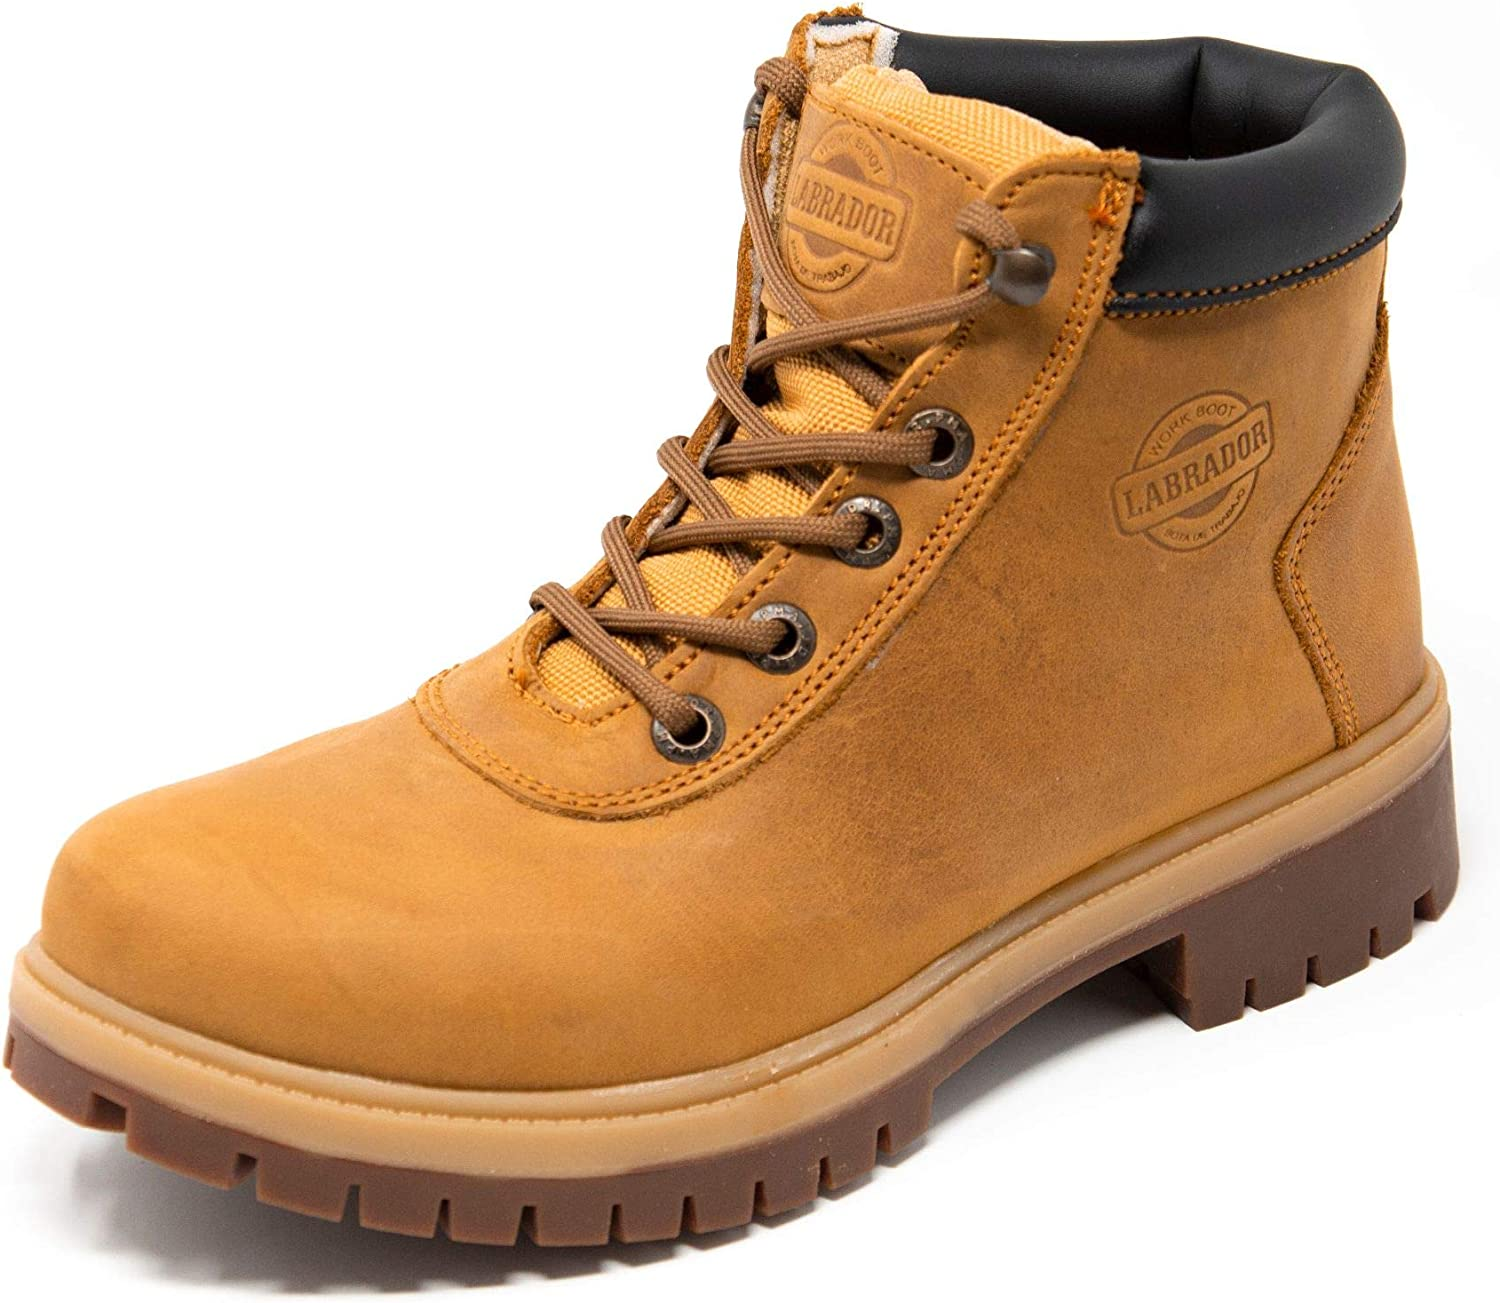 LABRADOR Women's Soft Toe Work Boot, for Construction, Leather, Rubber Outsole, Lightweight, 6 inch Shoe, BDT